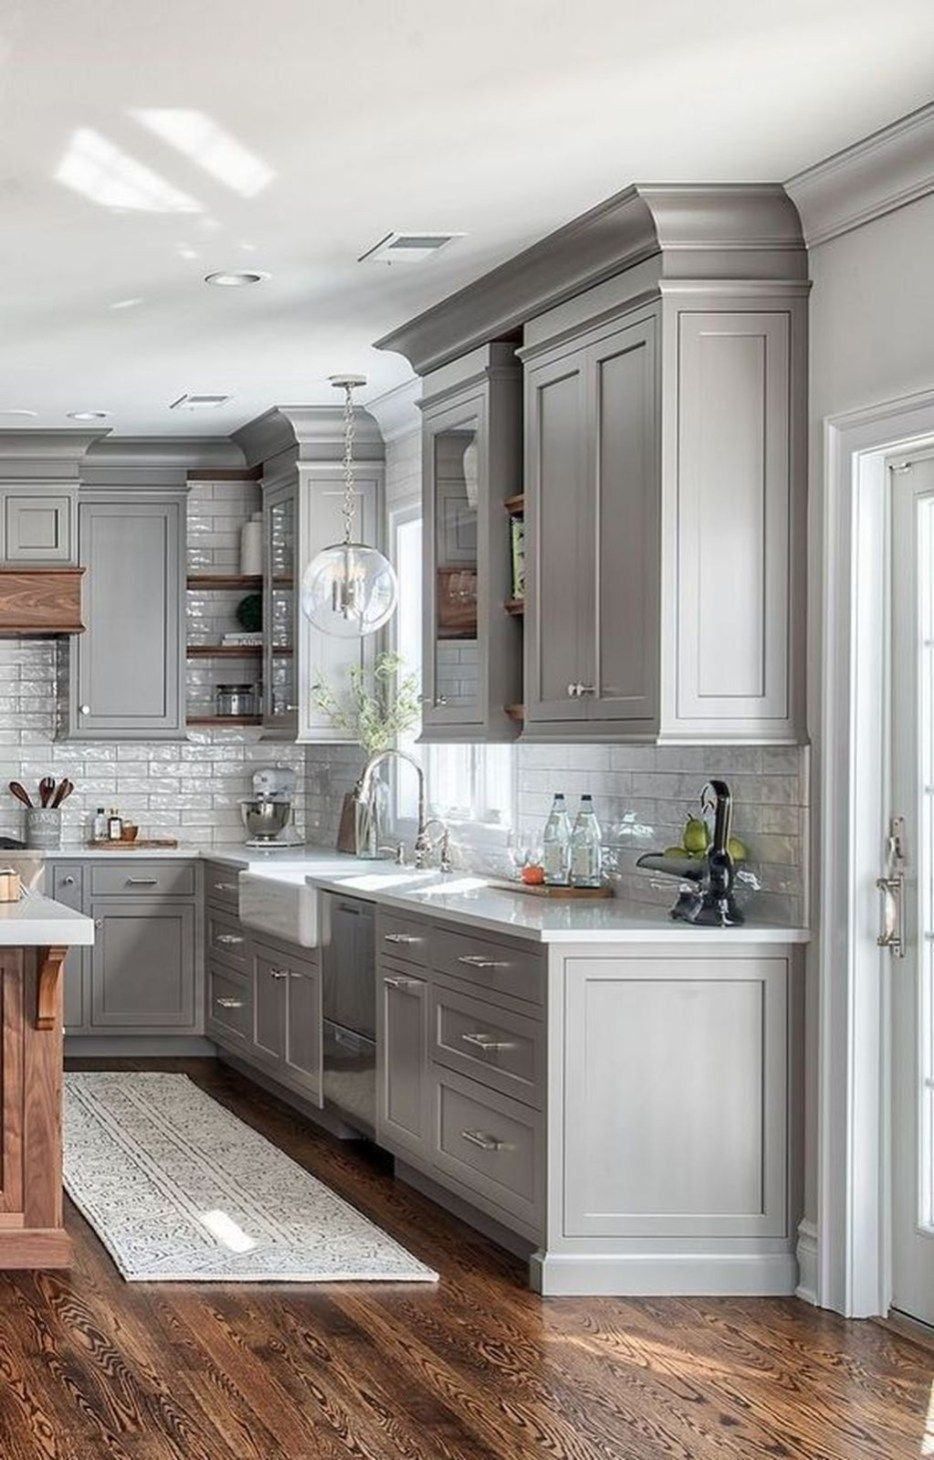 5 Latest Trend Of Most Sought After Kitchen Design Ideas 2020 In 2020 Kitchen Cabinet Styles Kitchen Renovation Cost Kitchen Cabinet Design